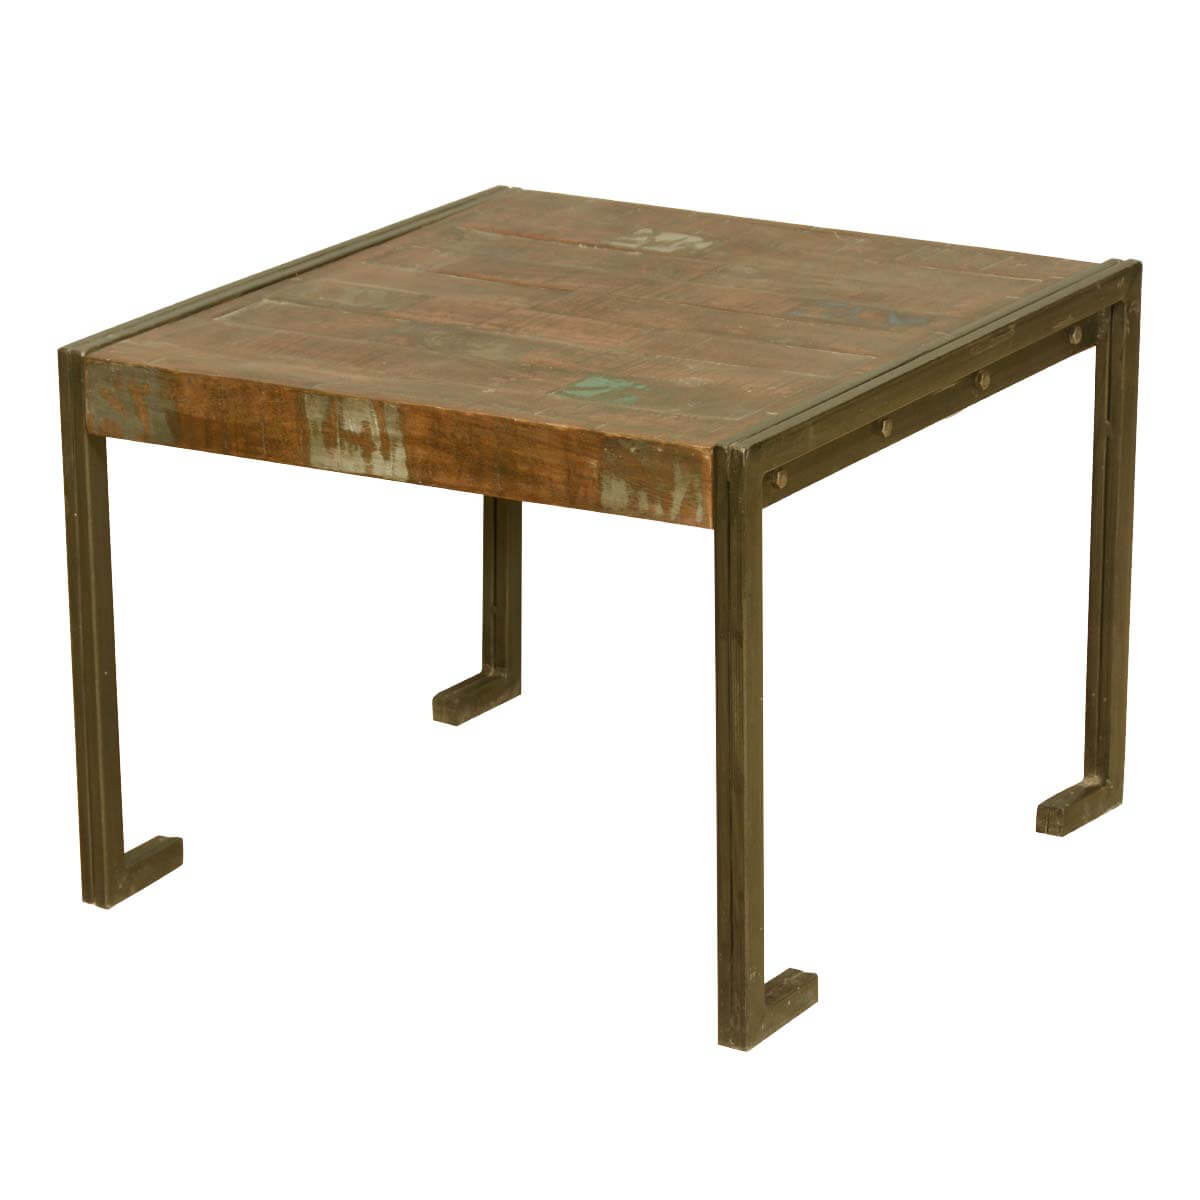 Industrial Look End Tables Industrial Style Old Reclaimed Wood Metal Frame Rustic End